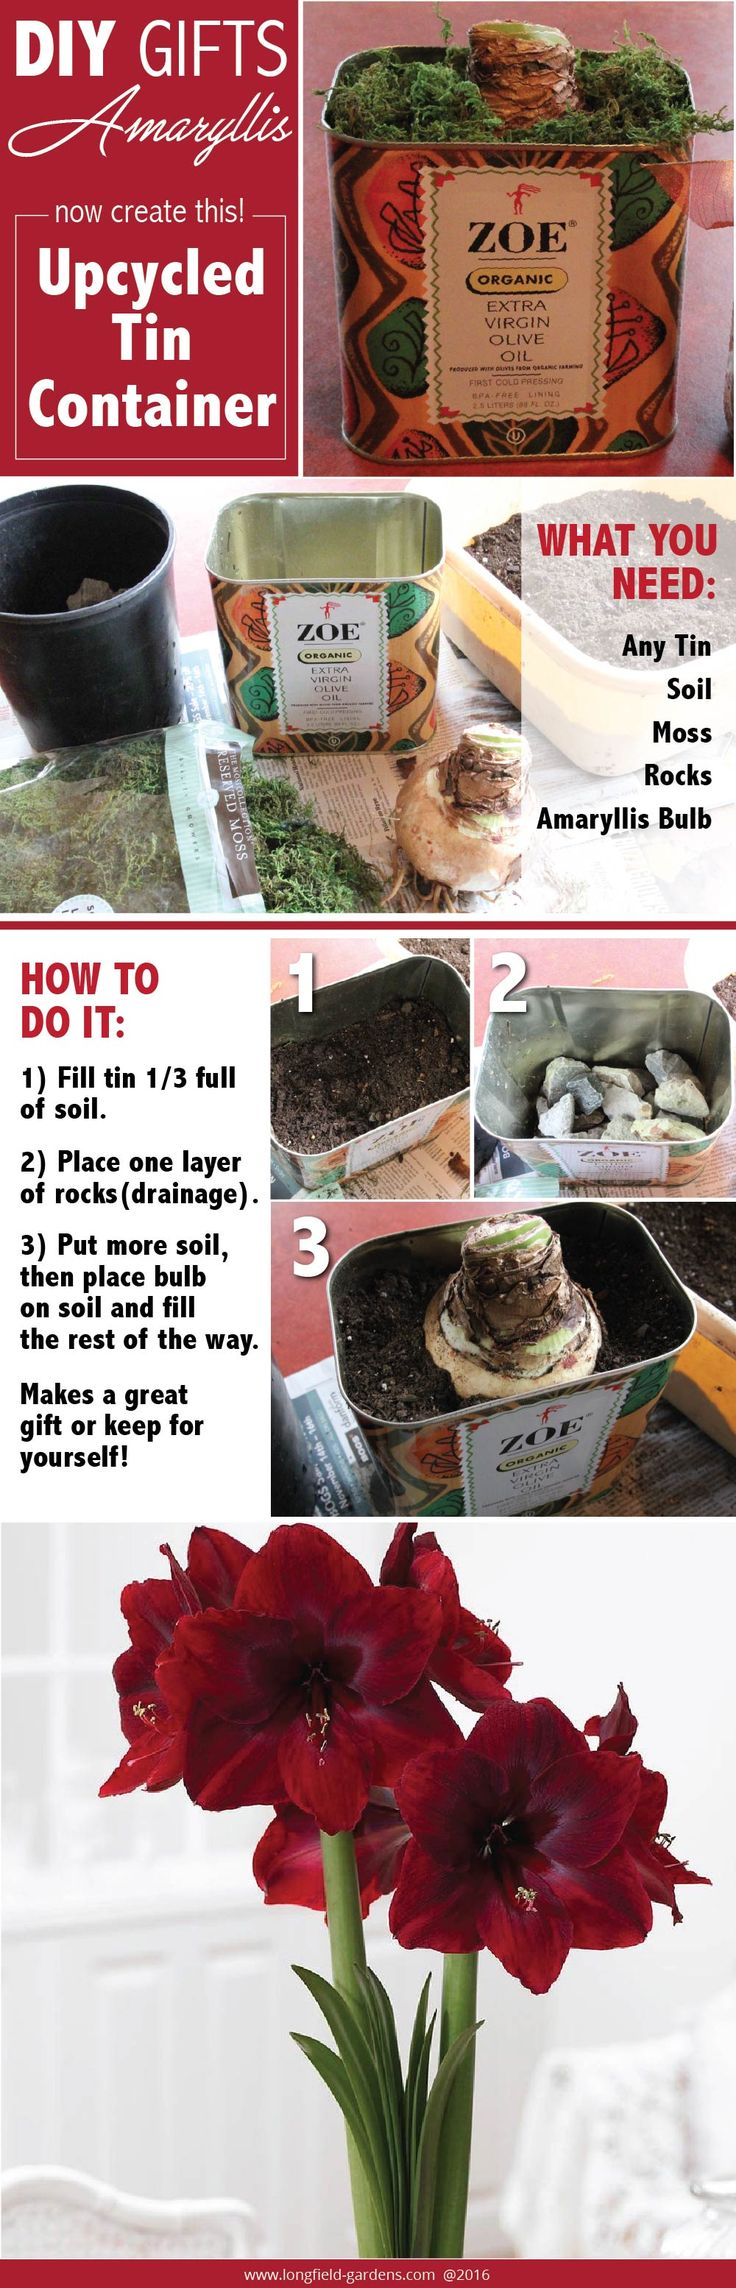 Create Your Own Upcycled Gift! A Great Project To Do With Kids Or For  Yourself